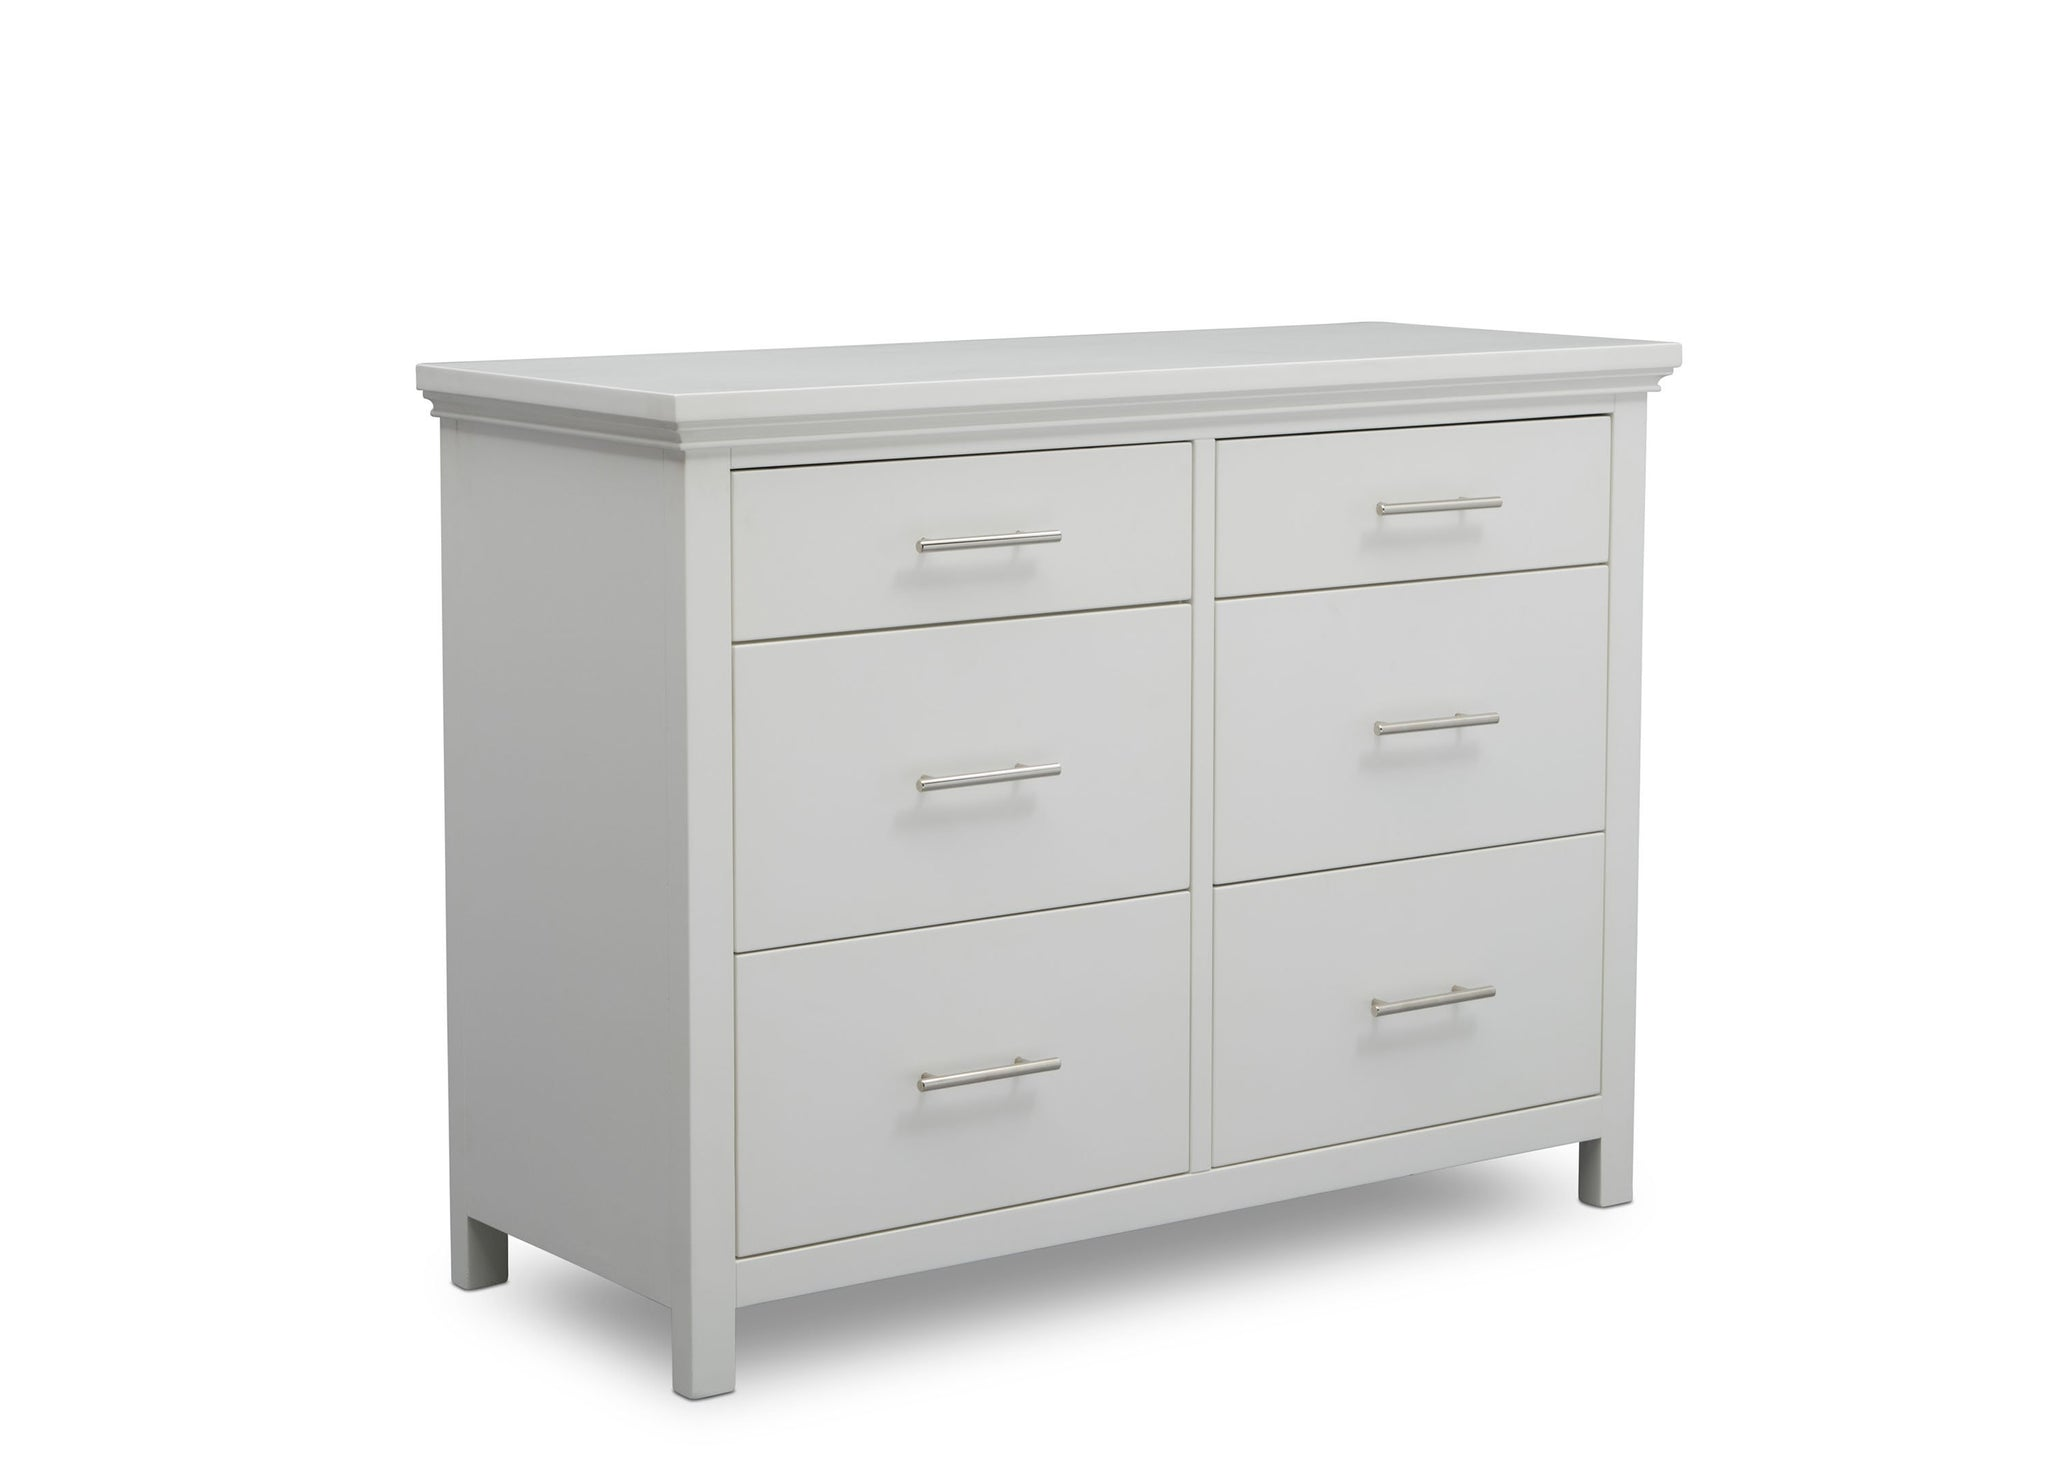 Delta Children Bianca White (130) Avery 6 Drawer Dresser (708060), Sideview, b4b